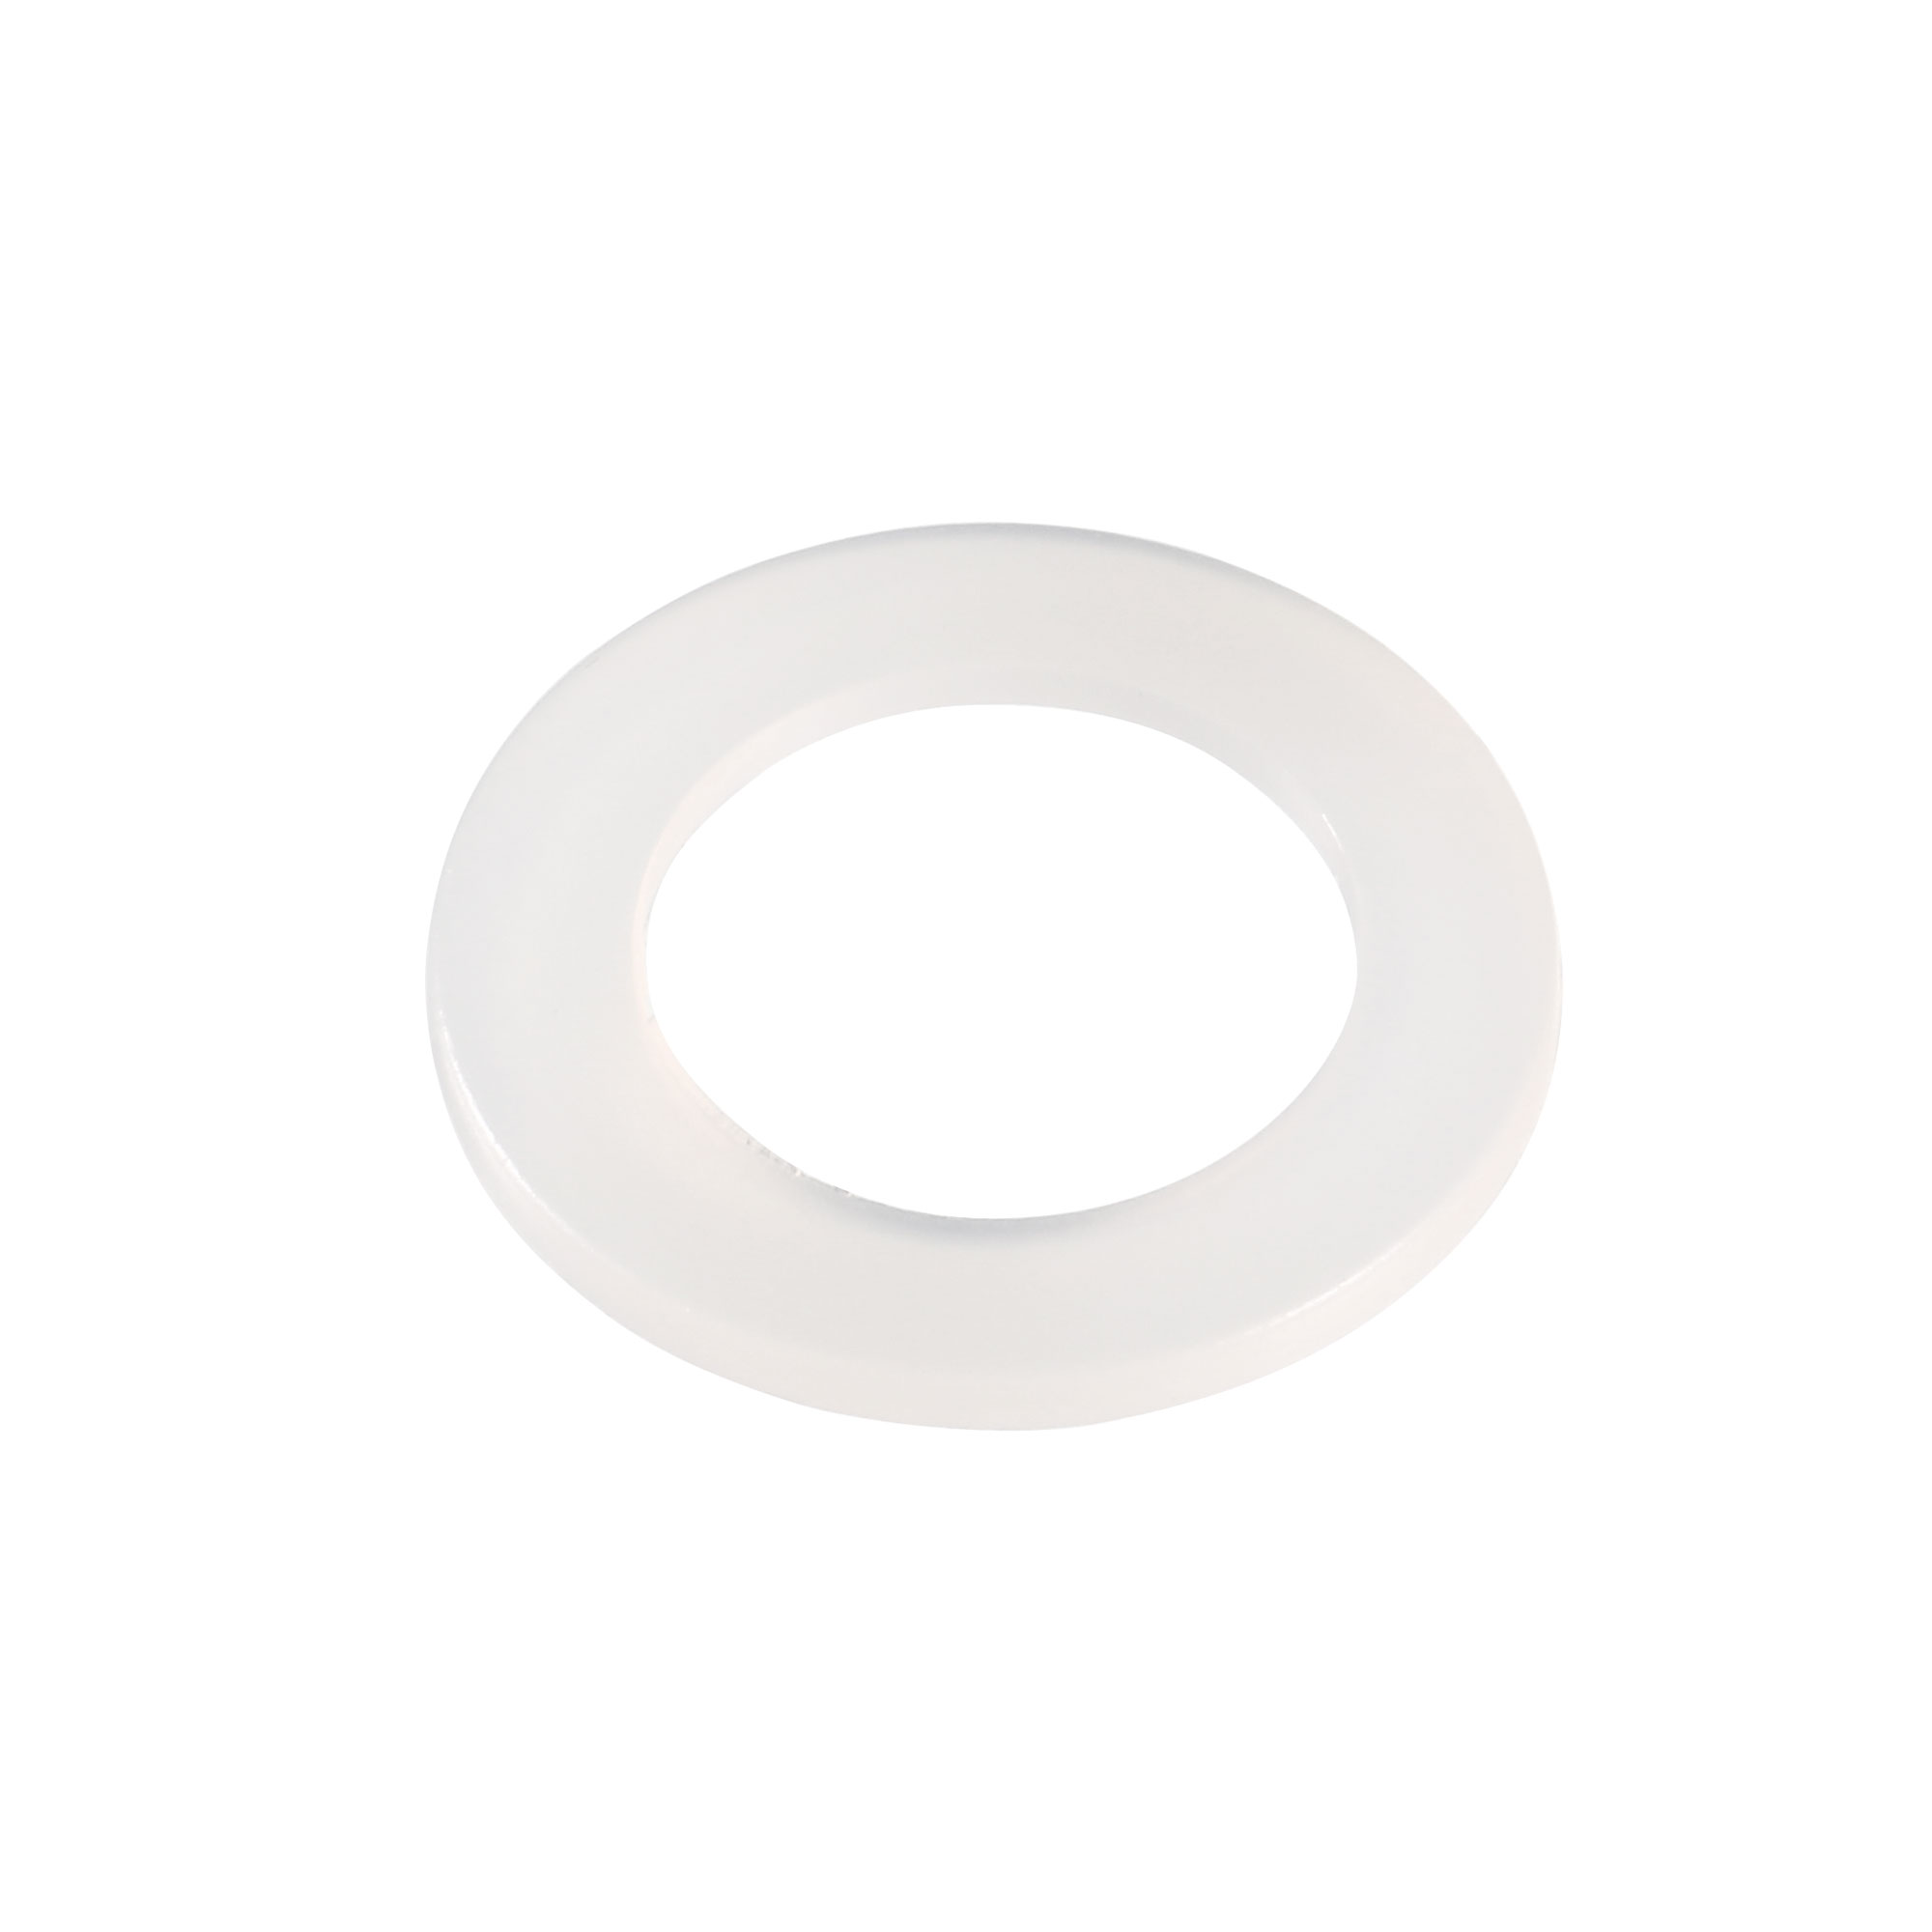 16mm x 10mm x 1mm Nylon Flat Insulating Washers Spacer Gasket Clear 100pcs